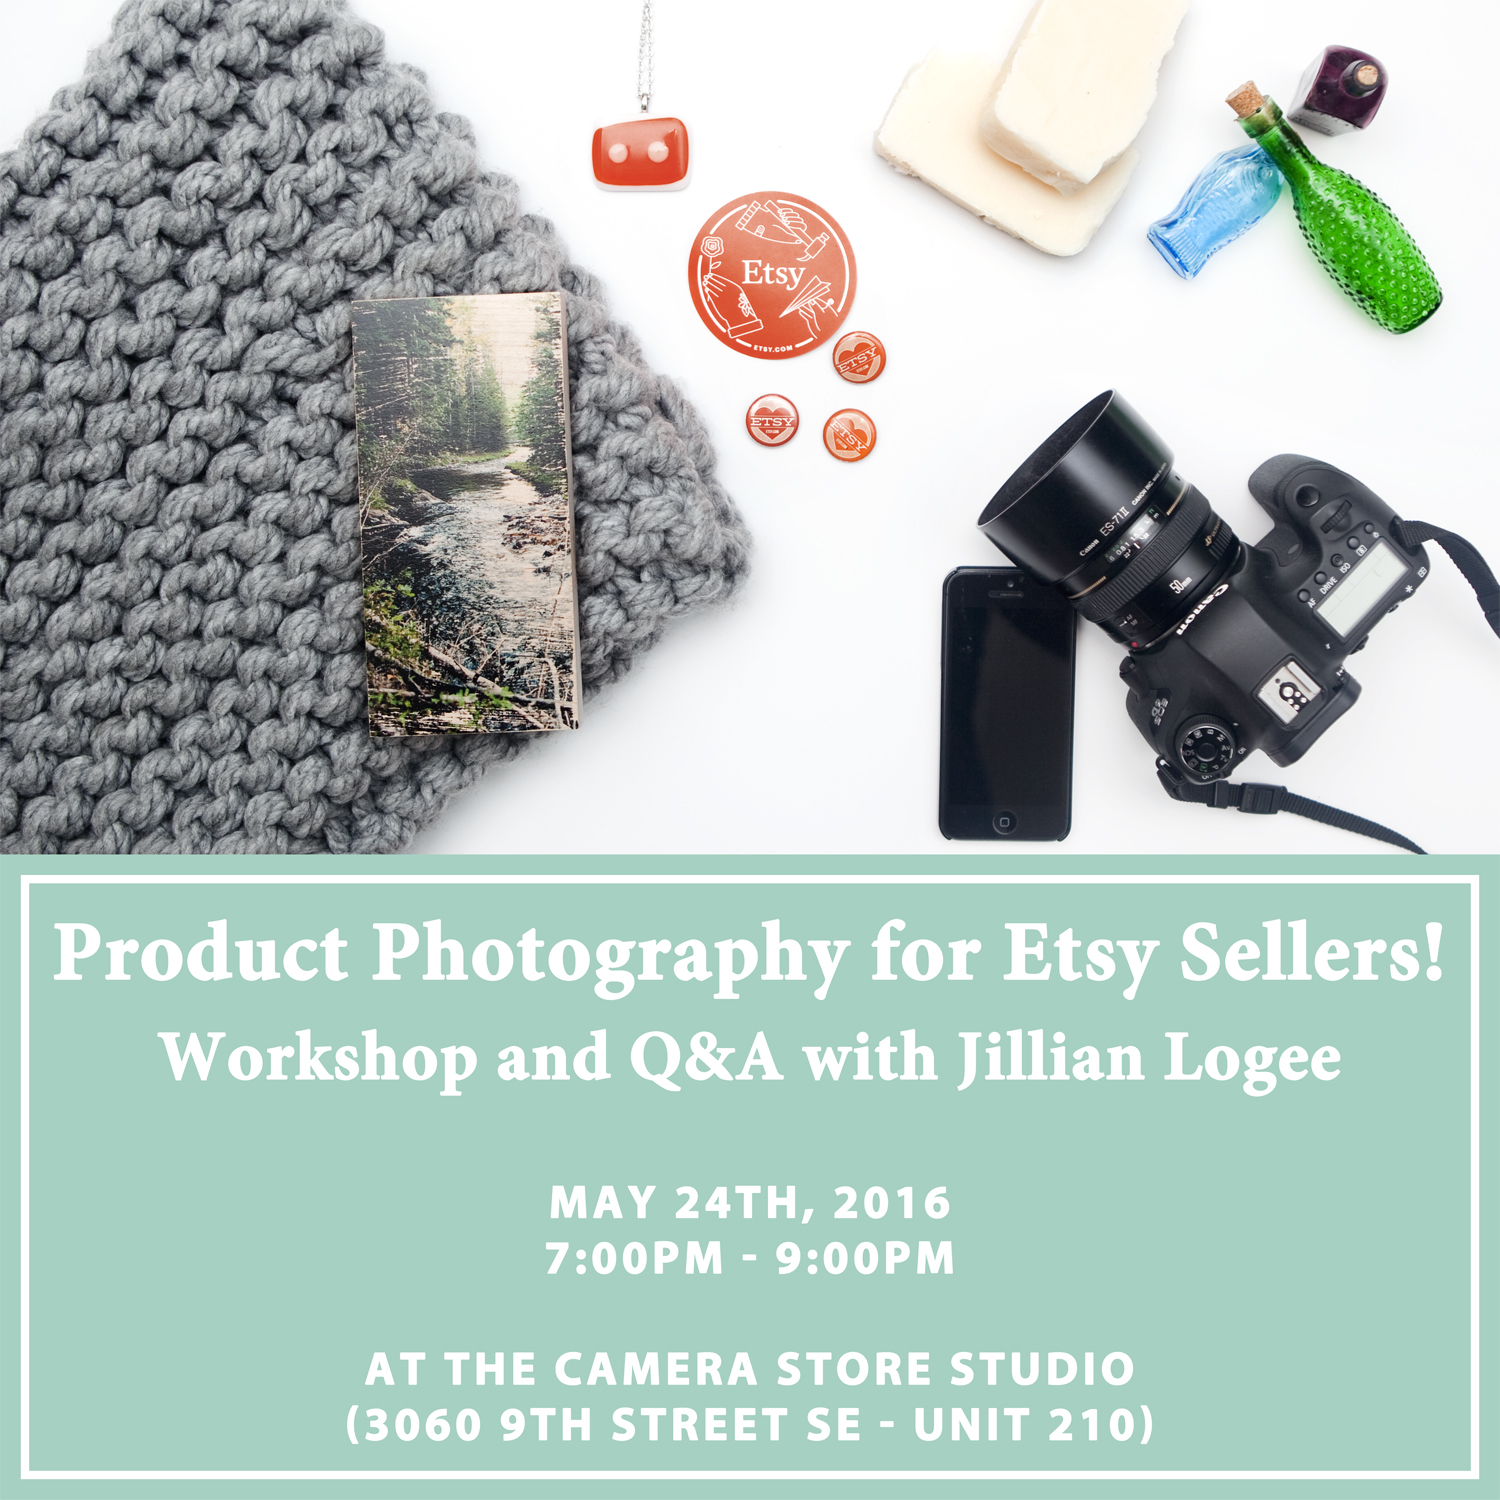 Etsy Calgary - Photo Dates Announcementw